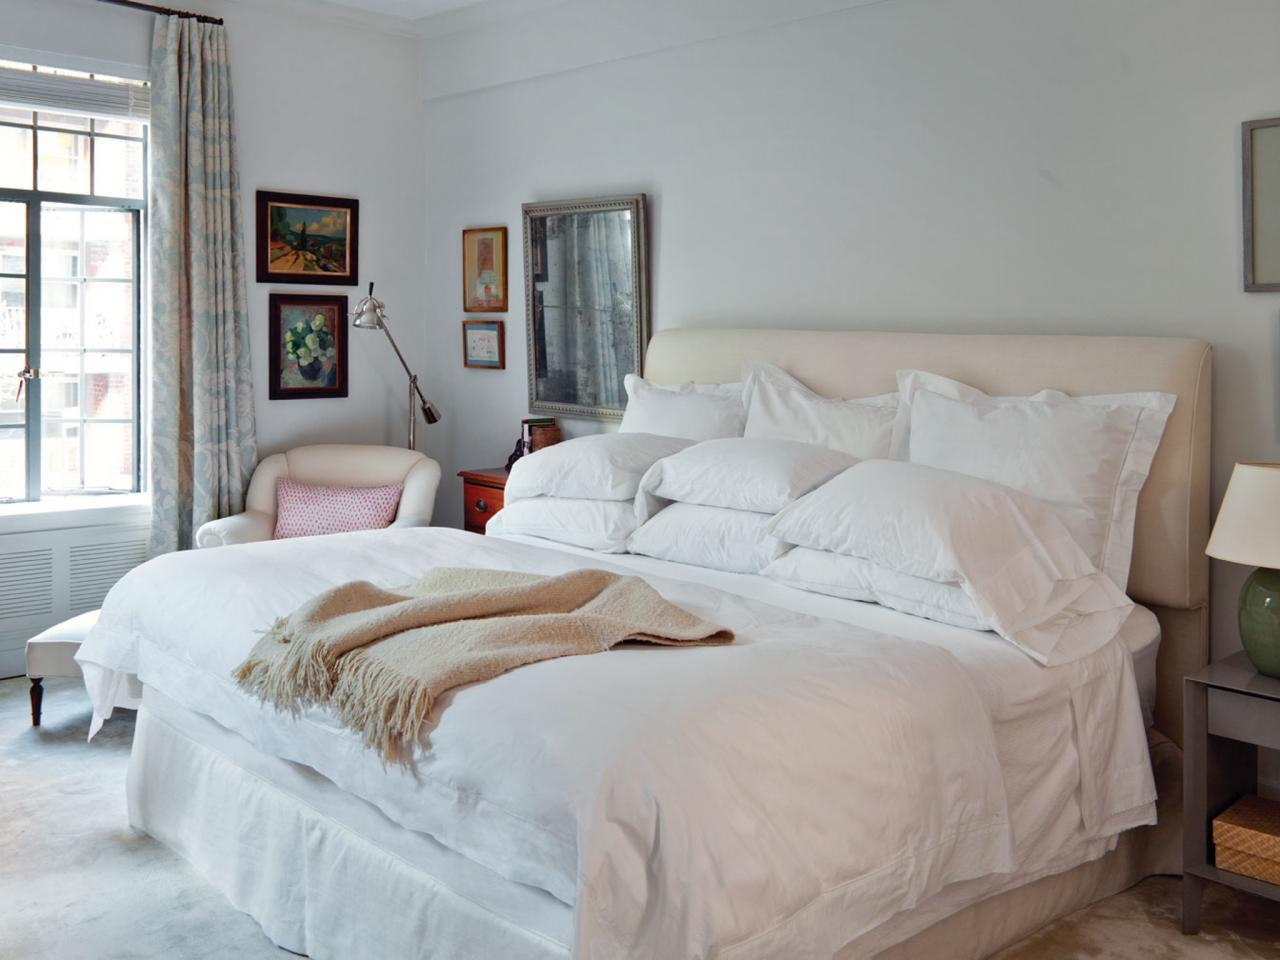 7 Ways To Make Your Bedroom Feel Like A Boutique Hotel